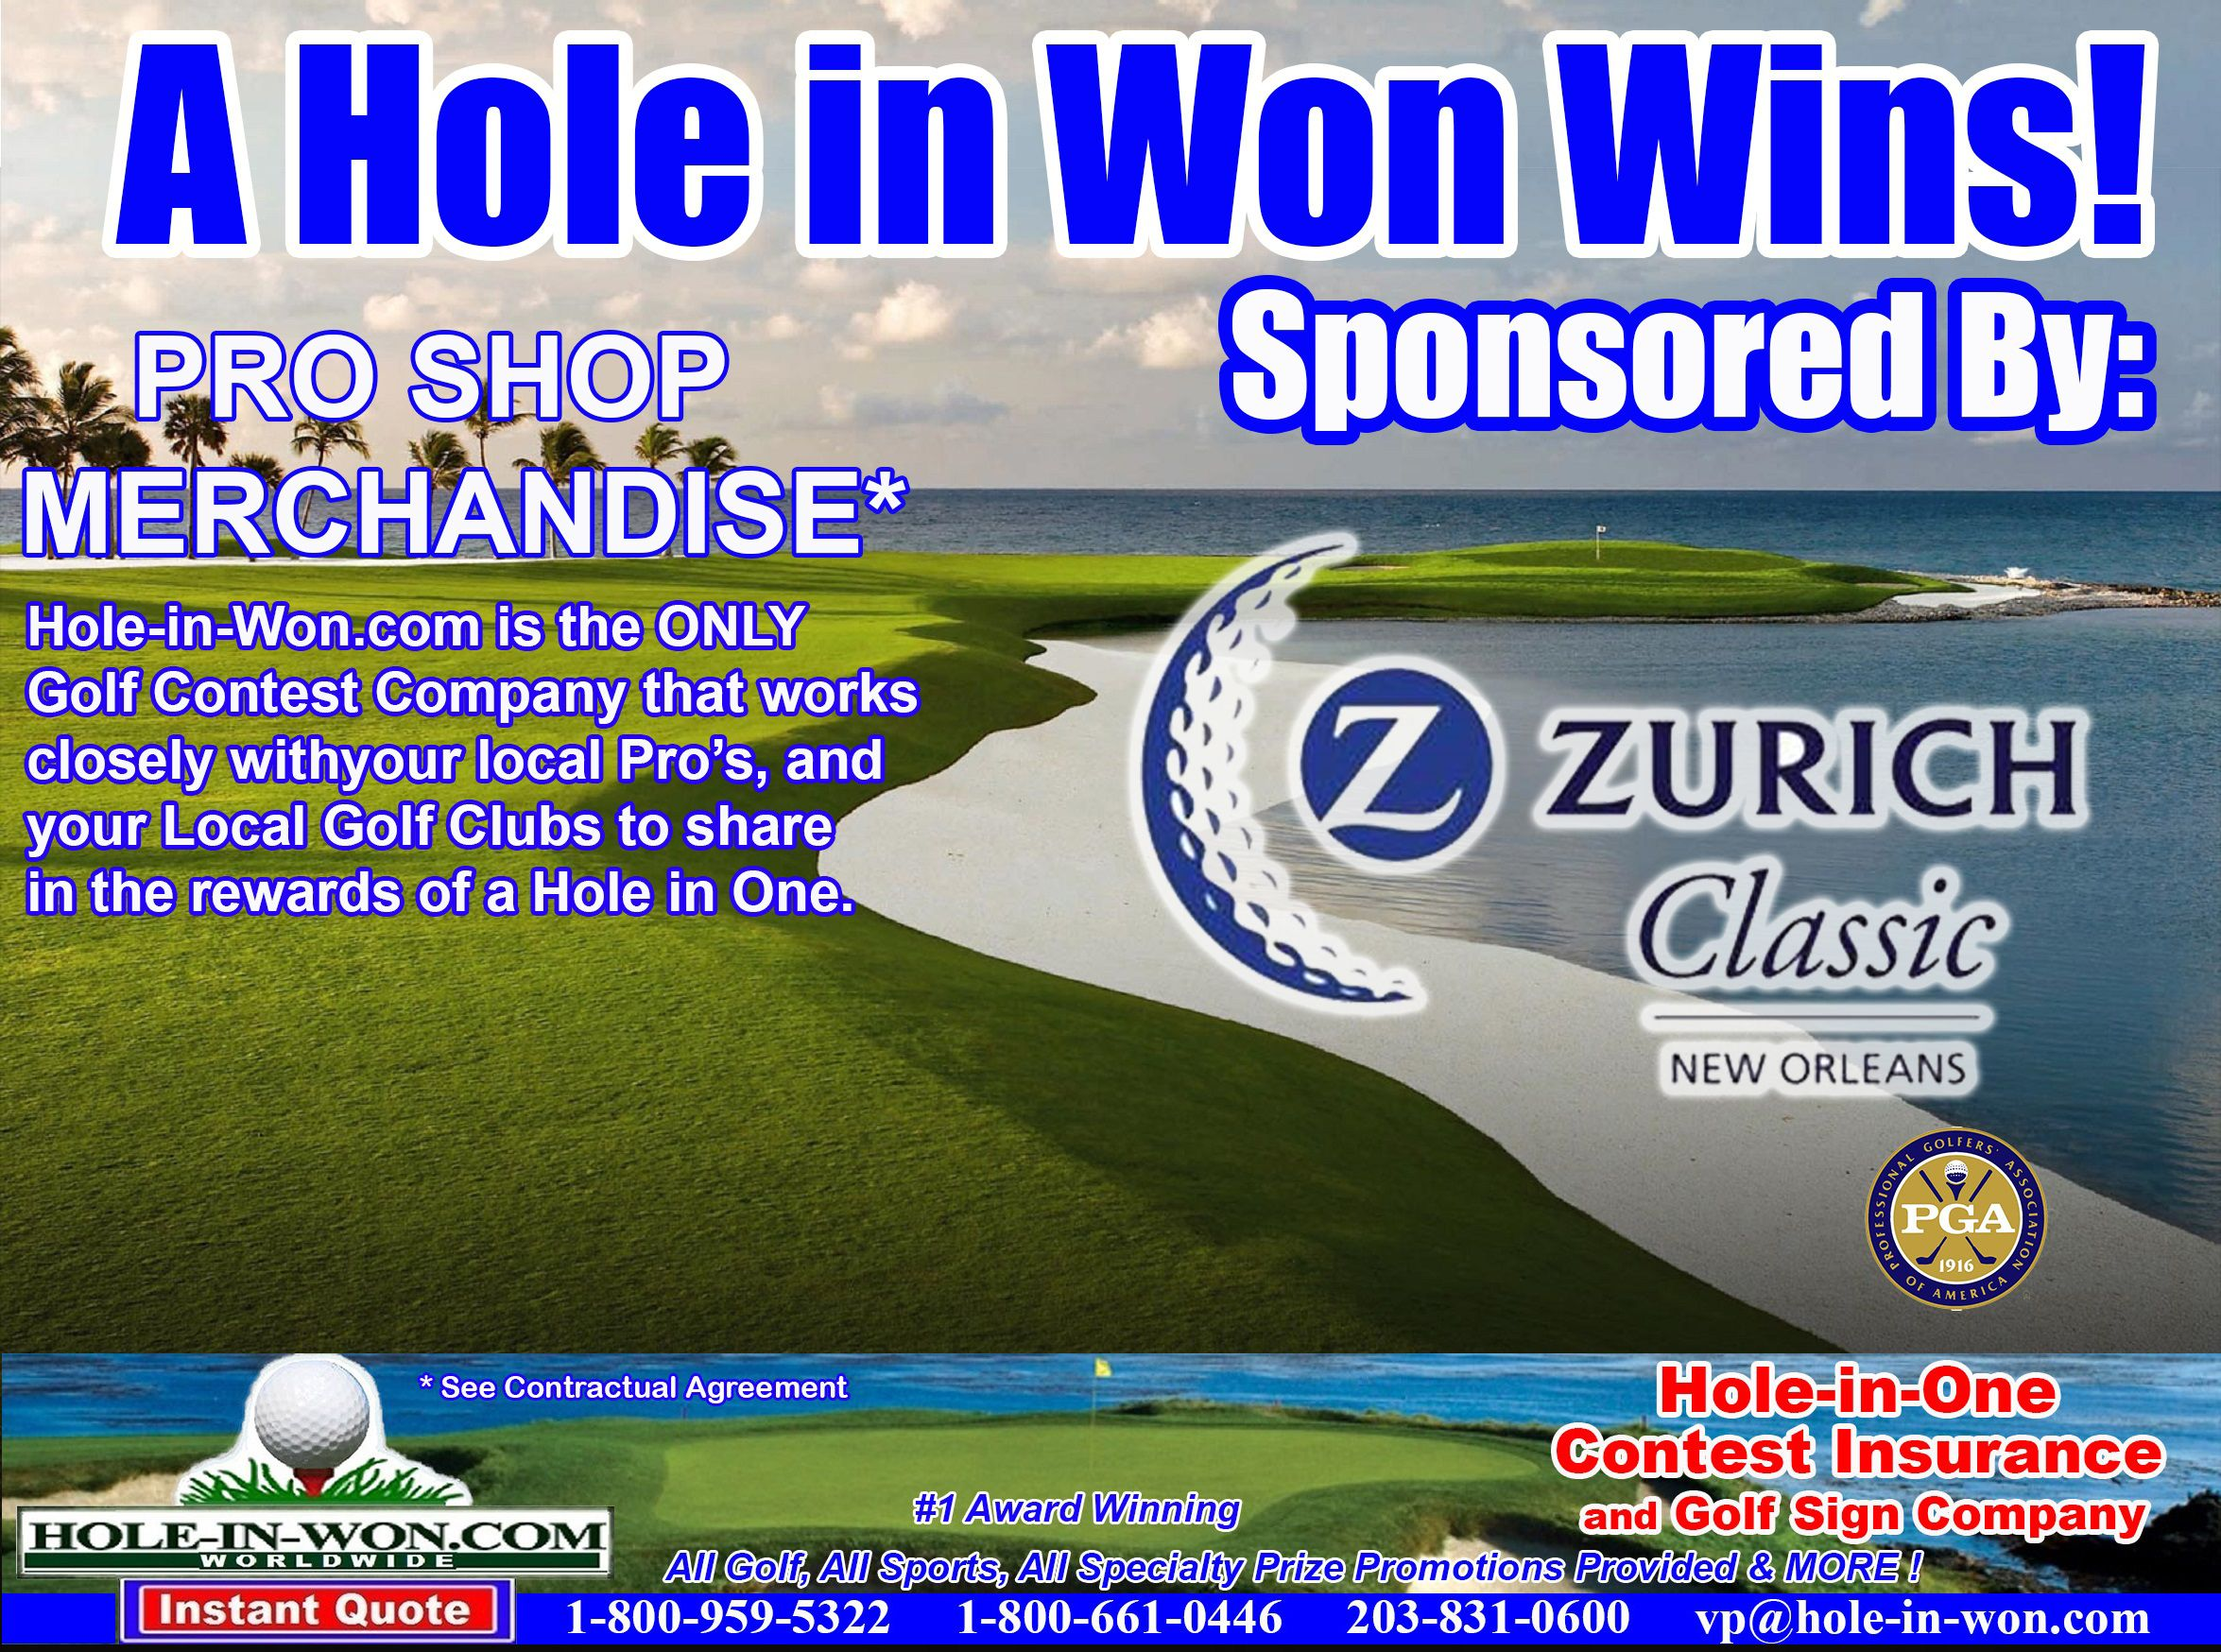 Zurich Insurance Agents Hole In One Insurance Putting Contests And